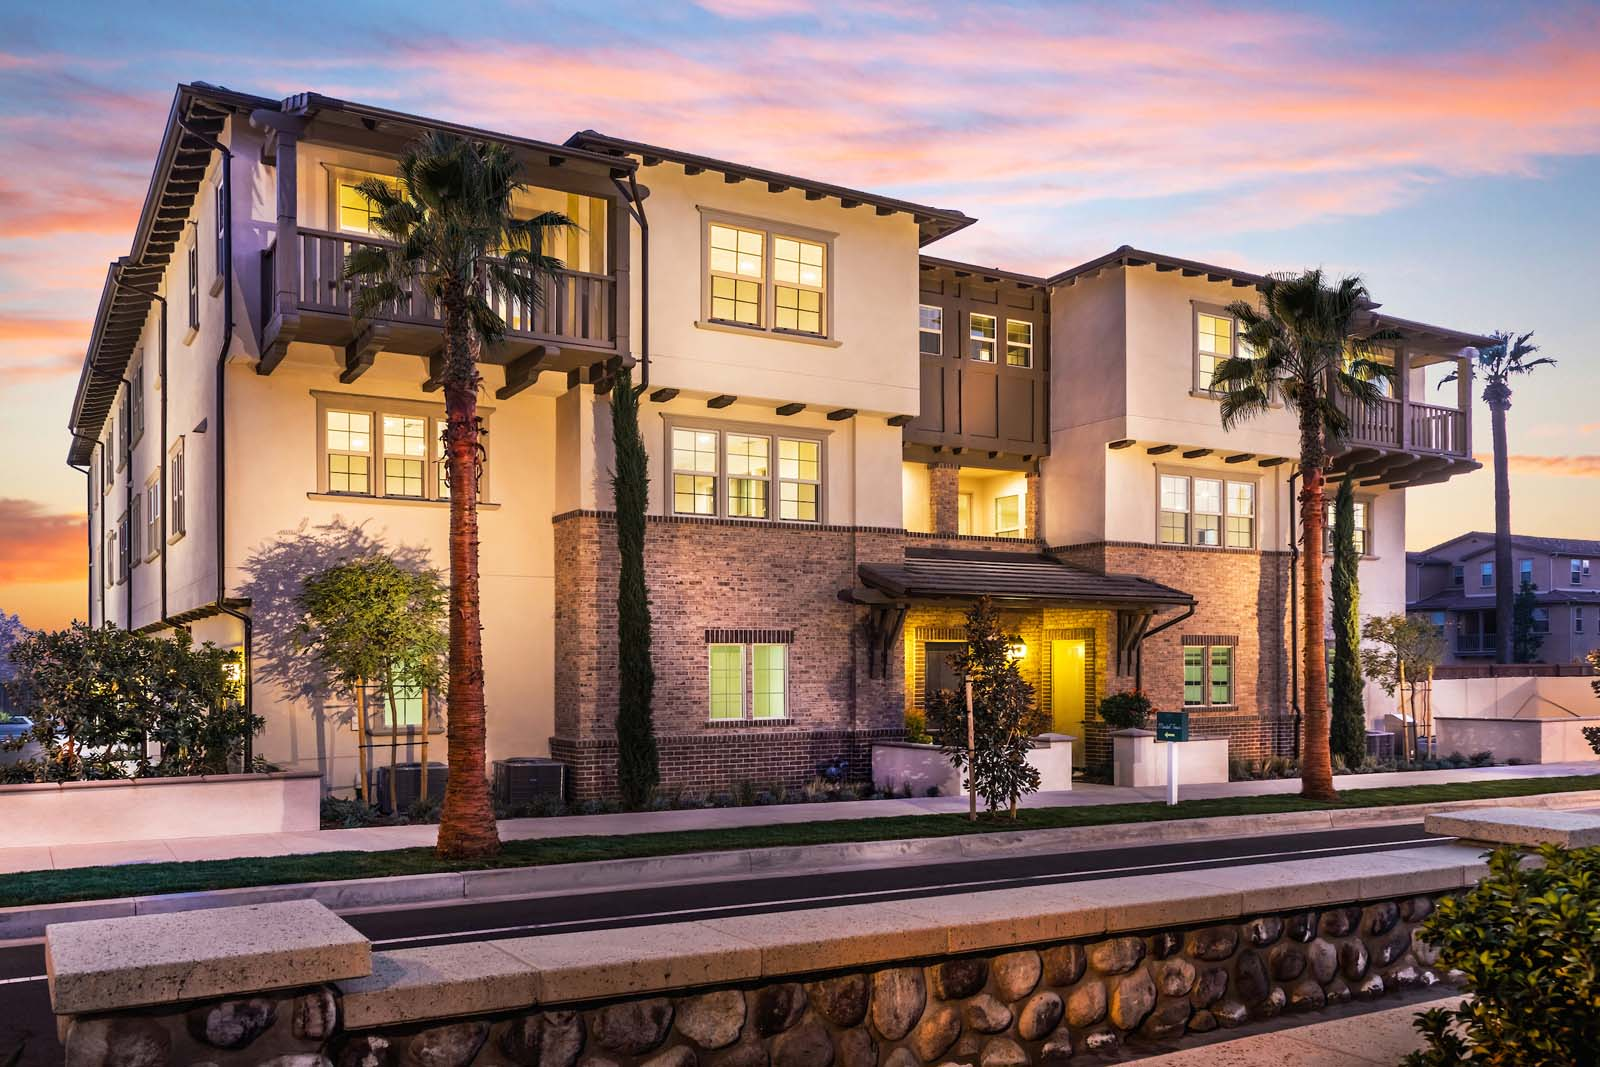 Azusa Townhomes for Sale with Public Transportation